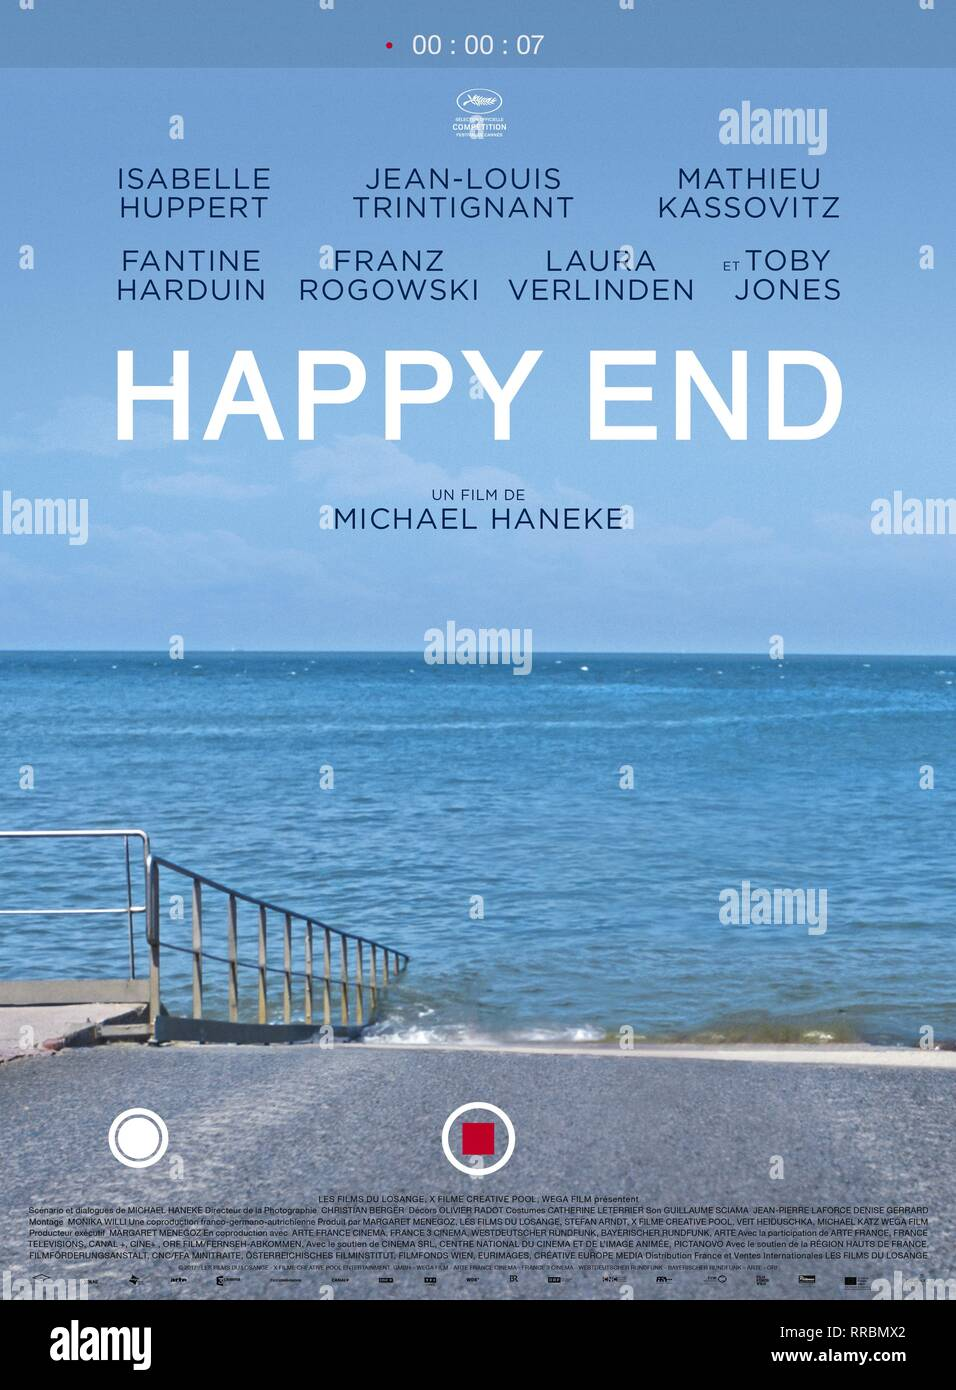 HAPPY END, MOVIE POSTER, 2017 - Stock Image